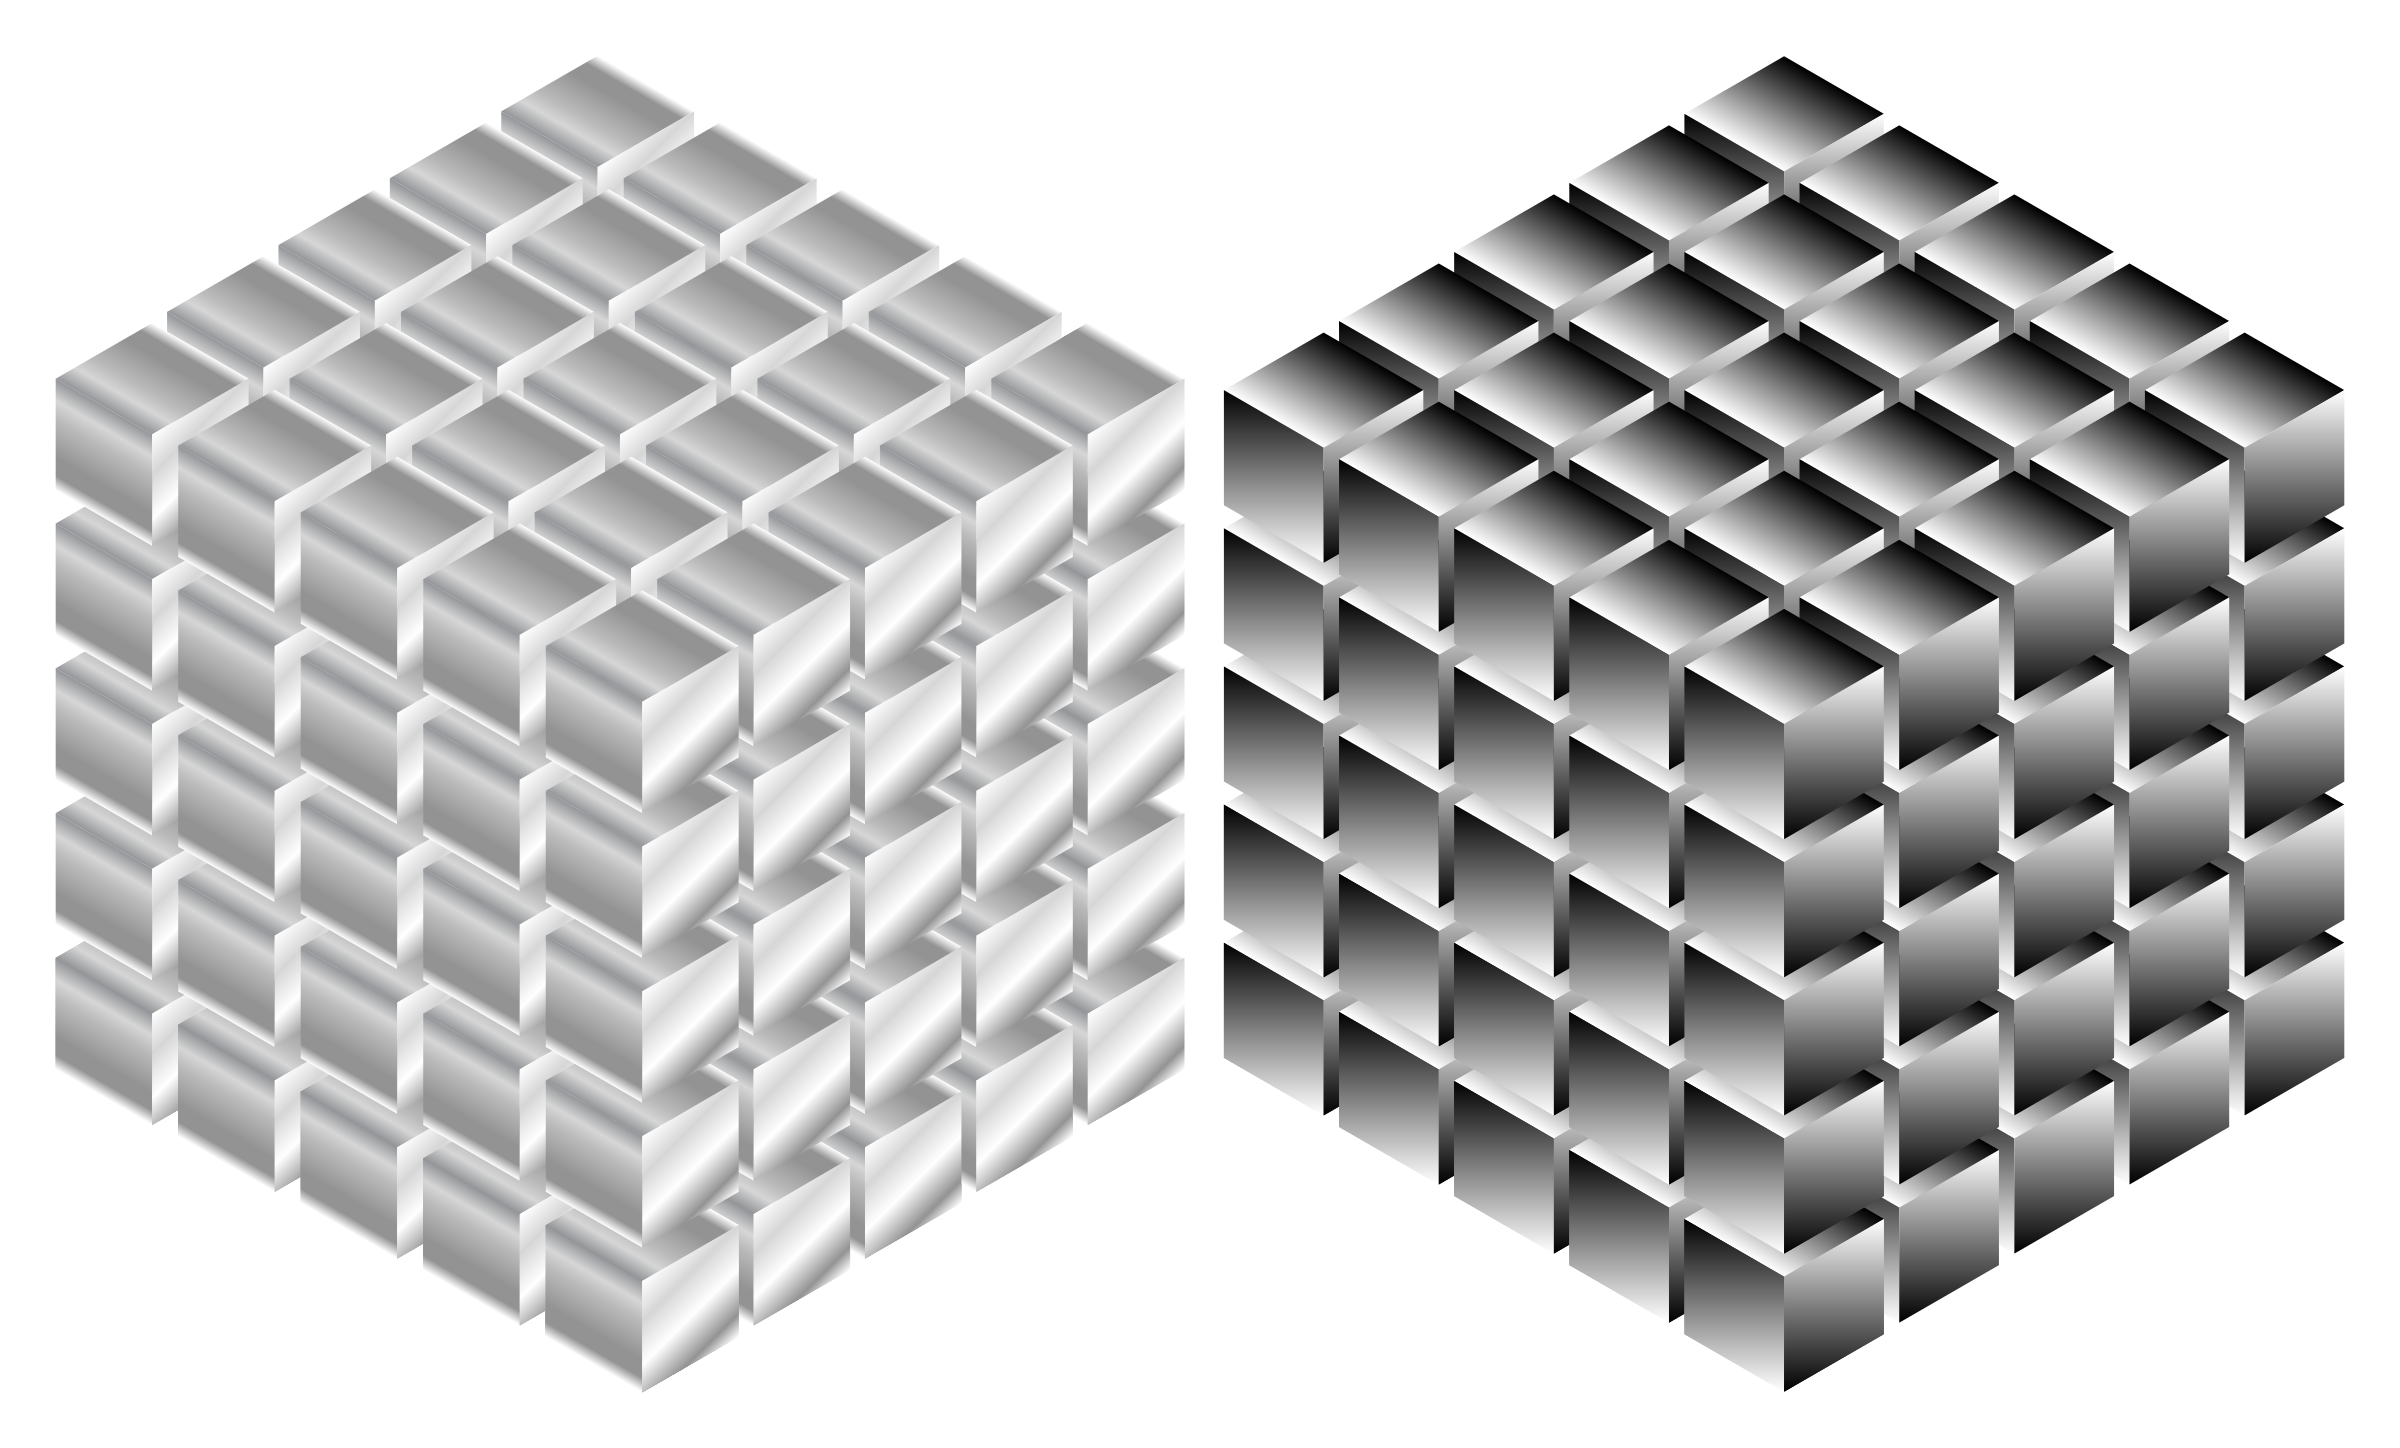 Isometric Metallic Cubes by GDJ